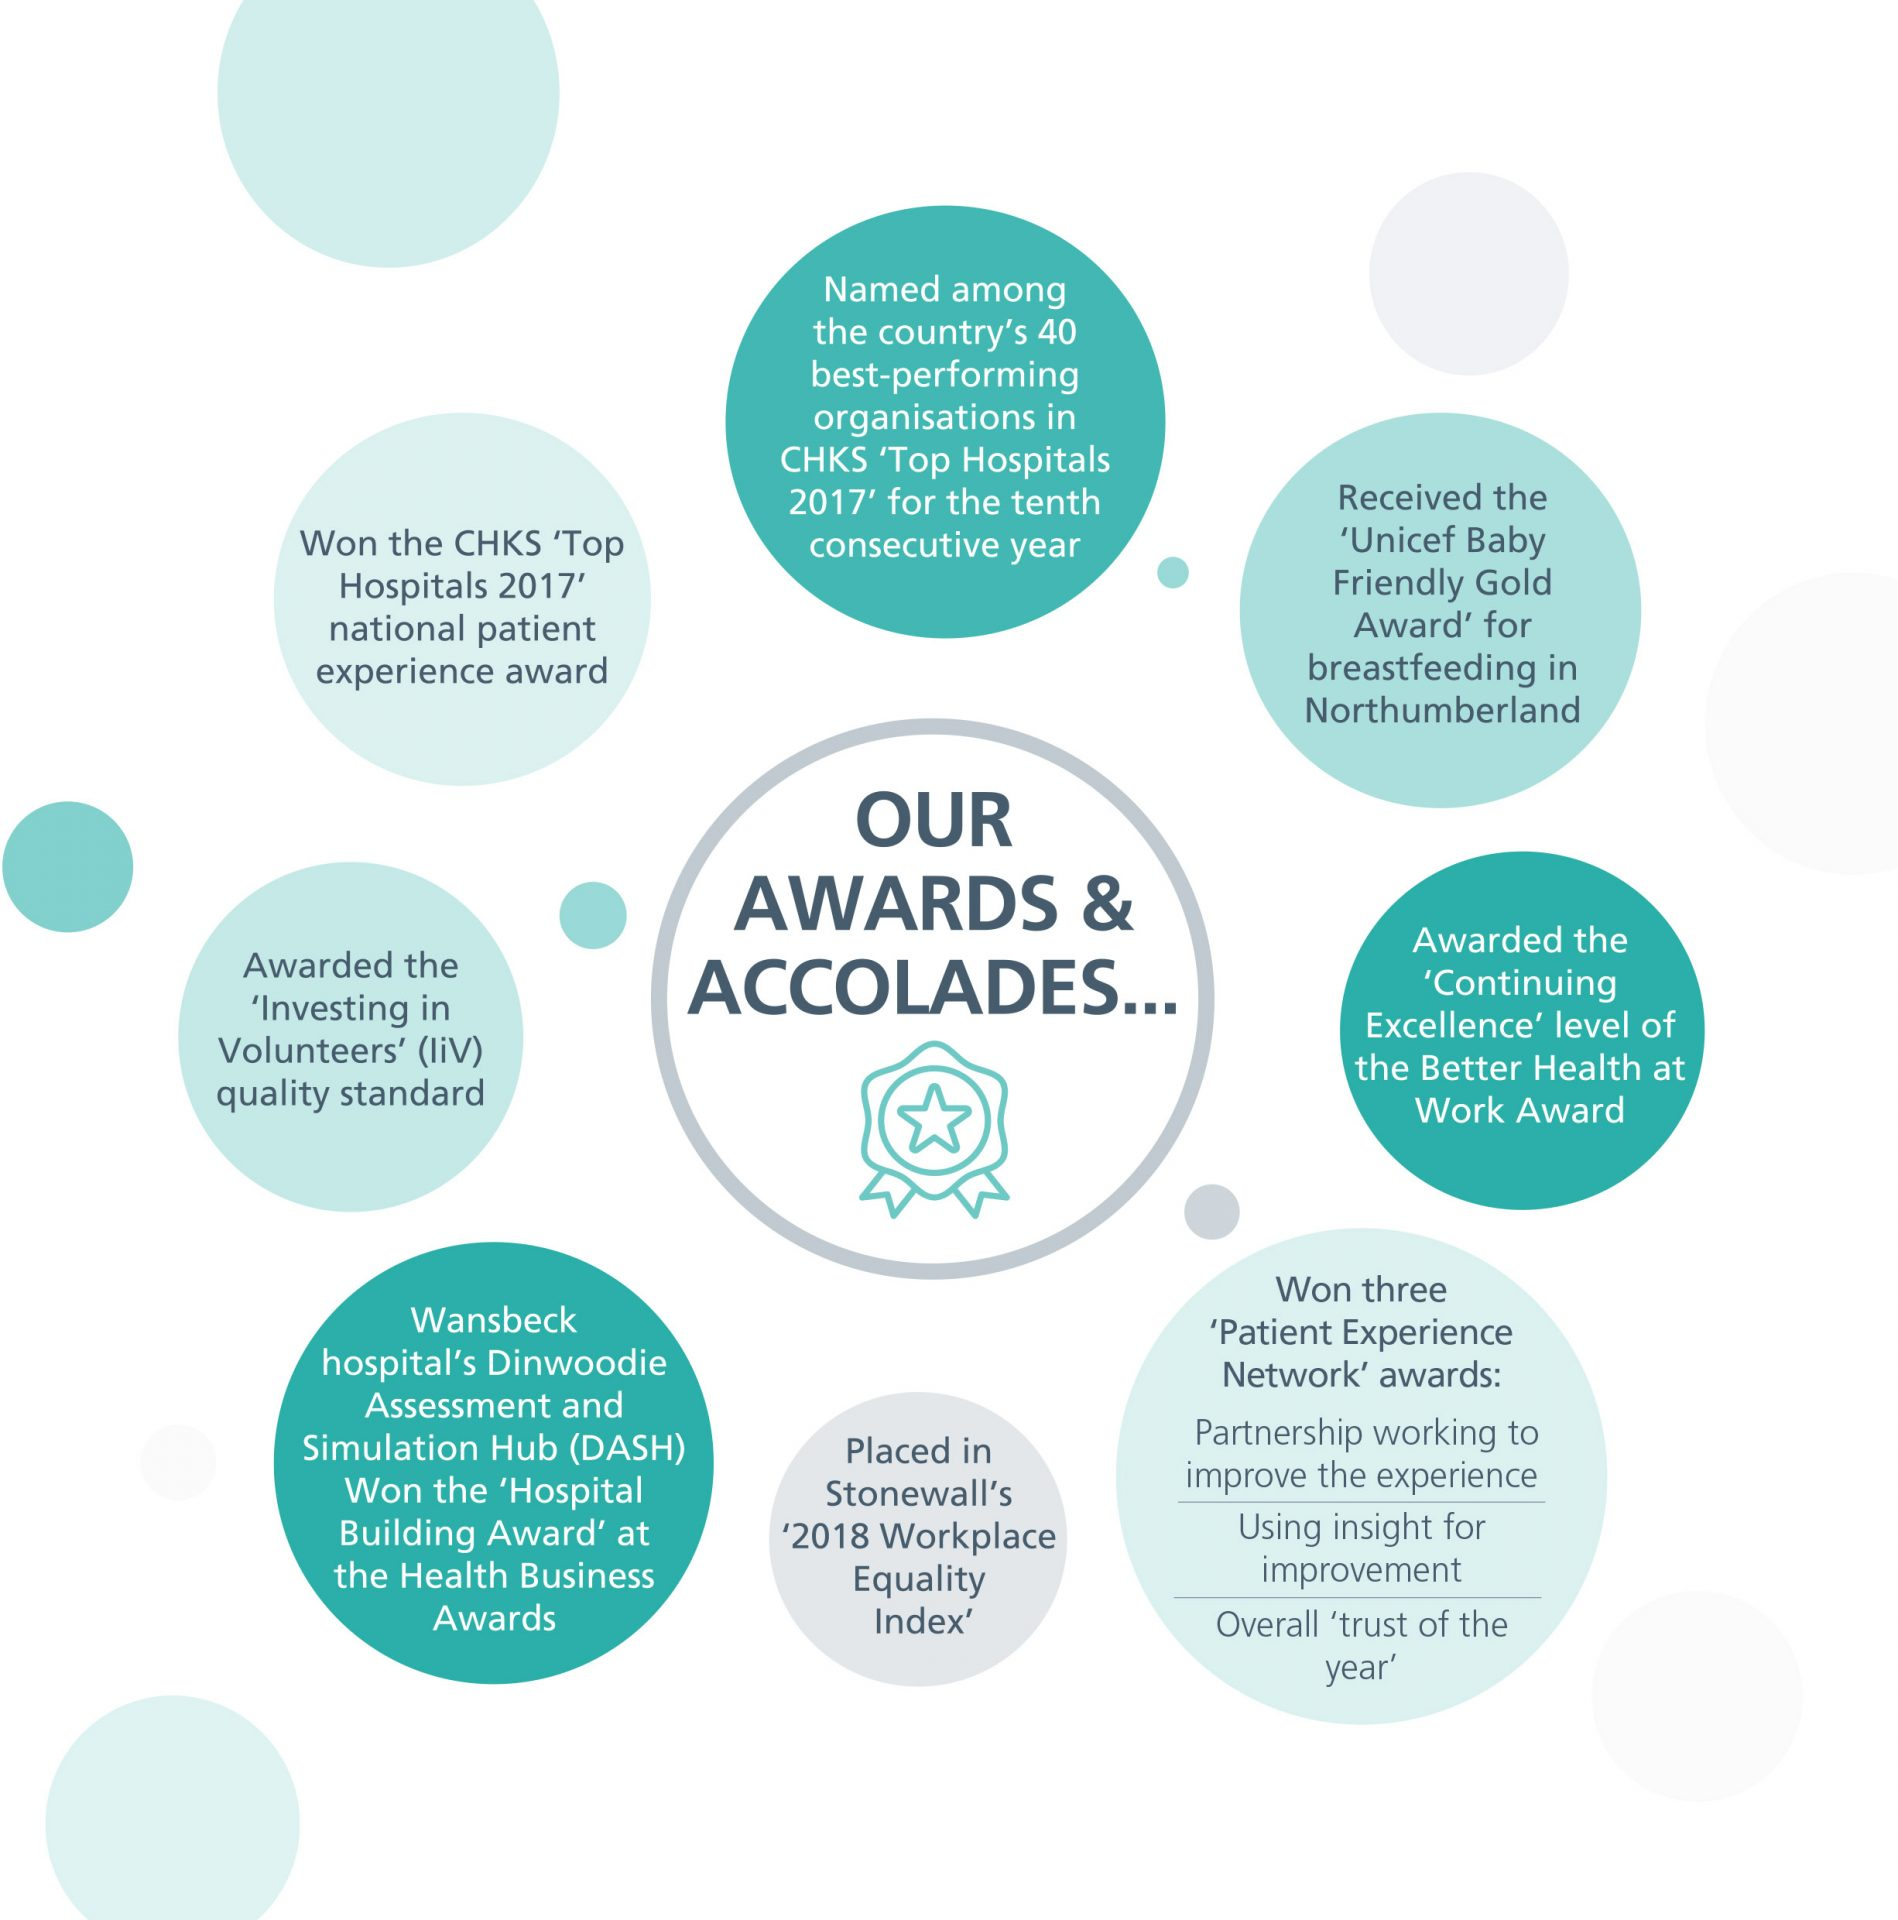 AnnualReport_AwardsAccolades_1718